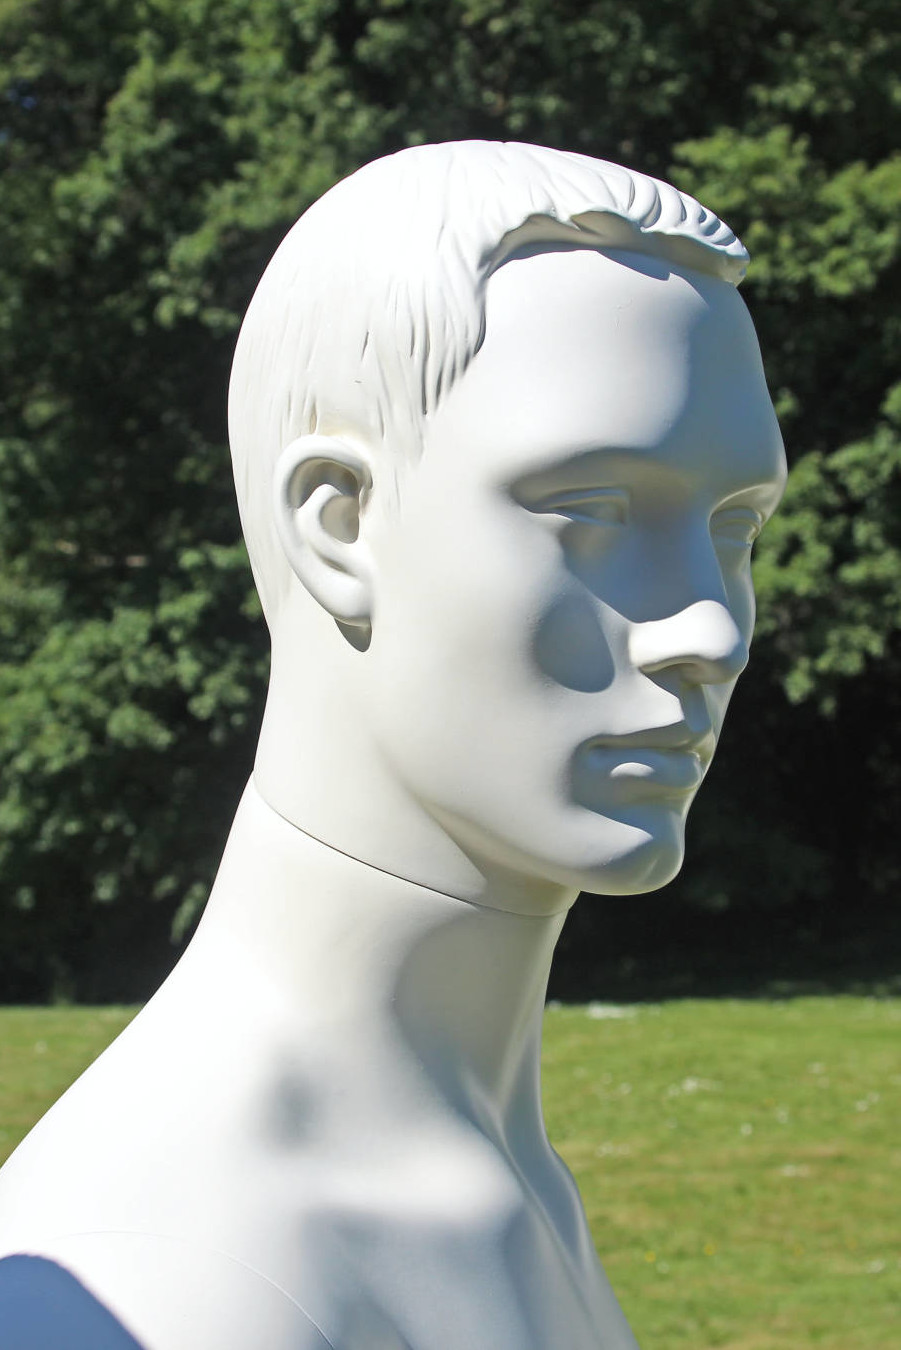 Stylised malemannequins